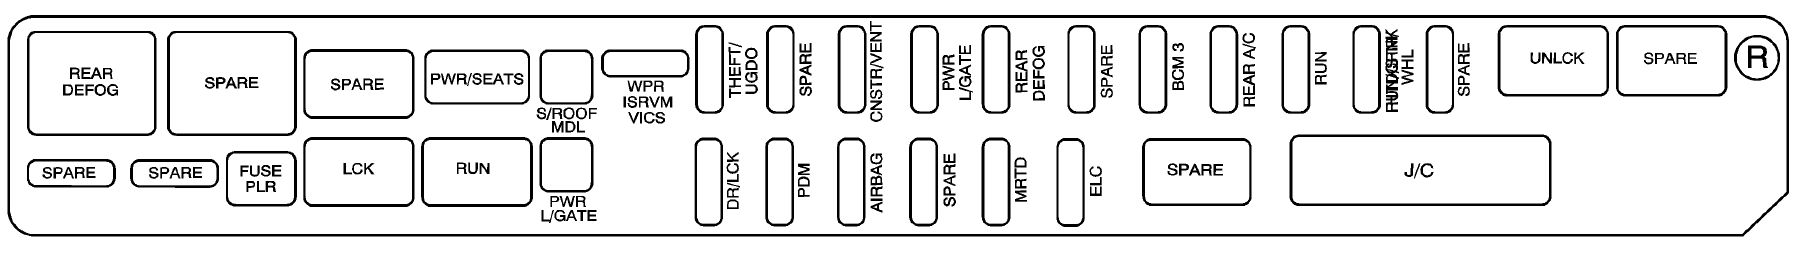 Cadillac SRX mk1 fuse box rear compartment right side 2008 cadillac srx mk1 (first generation; 2008) fuse box diagram 2008 cadillac cts rear fuse box location at aneh.co